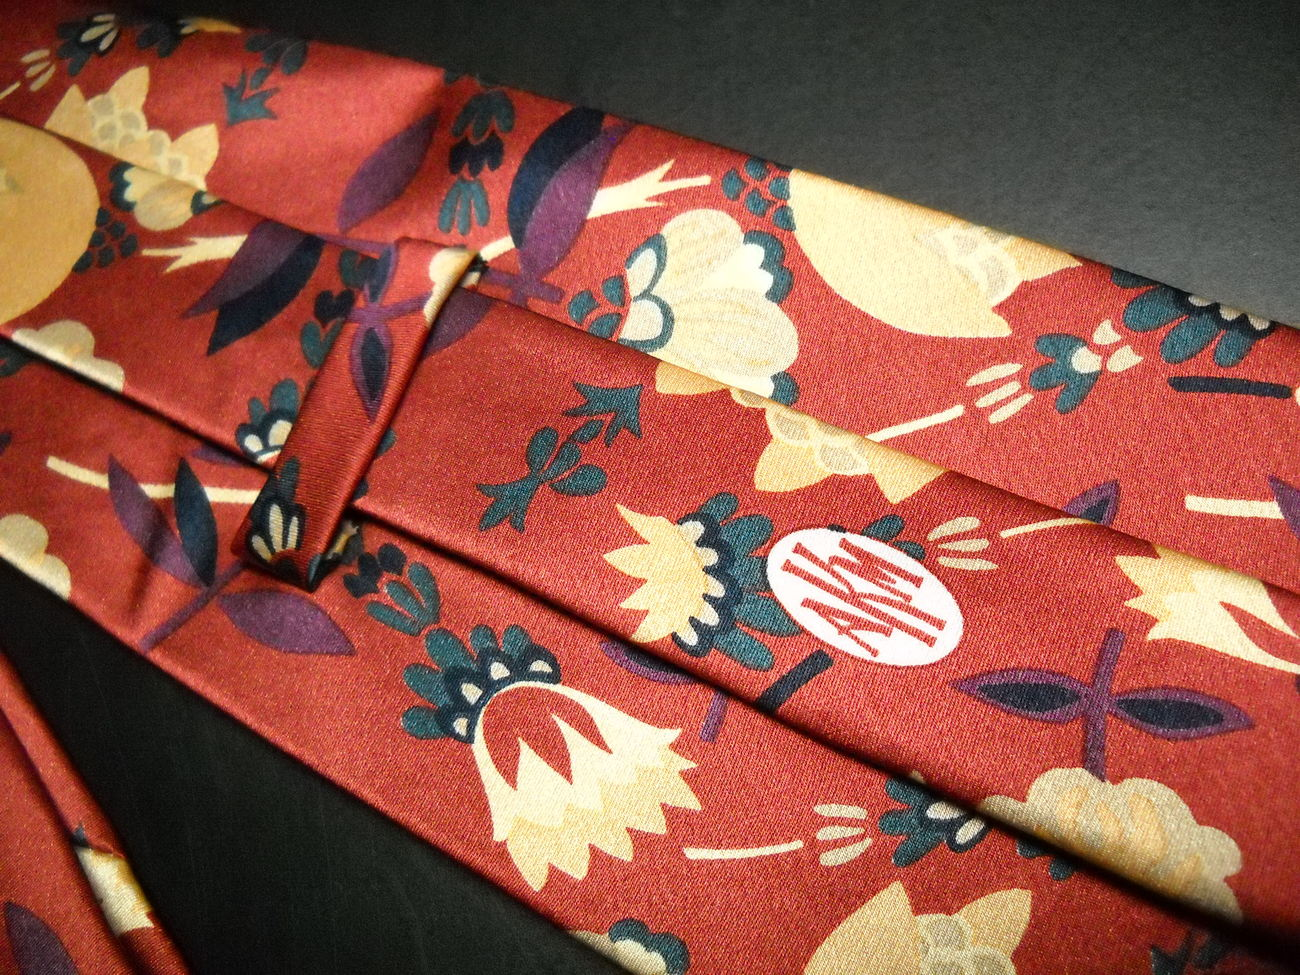 AKM Neck Tie Hand Made in Italy Silk Rusty Reds and Gold Flowers image 3